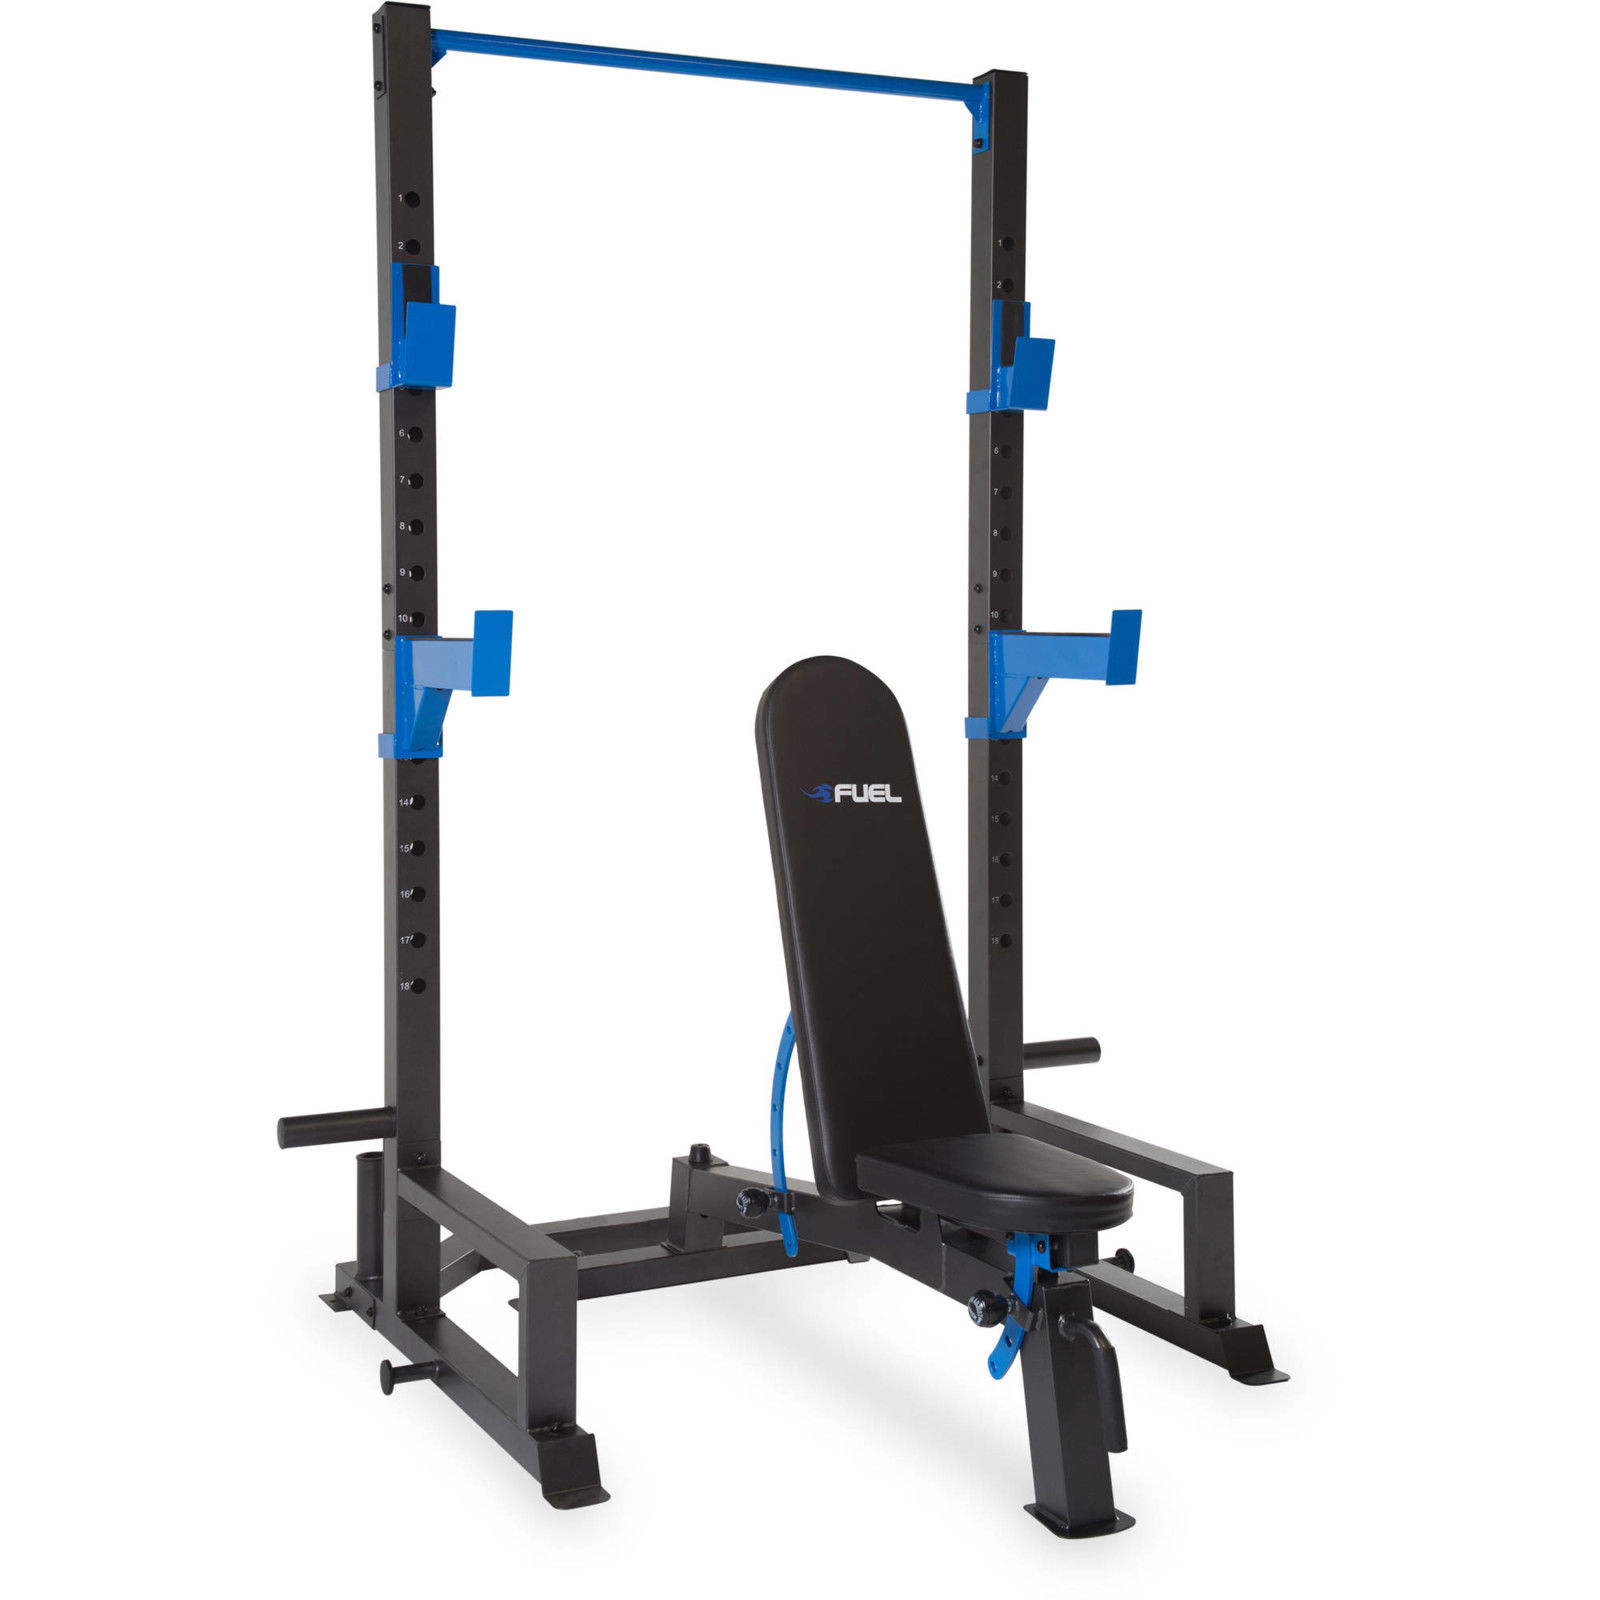 Craigslist Weight Bench | Work Out Bench with Weights | Workout Bench for Sale